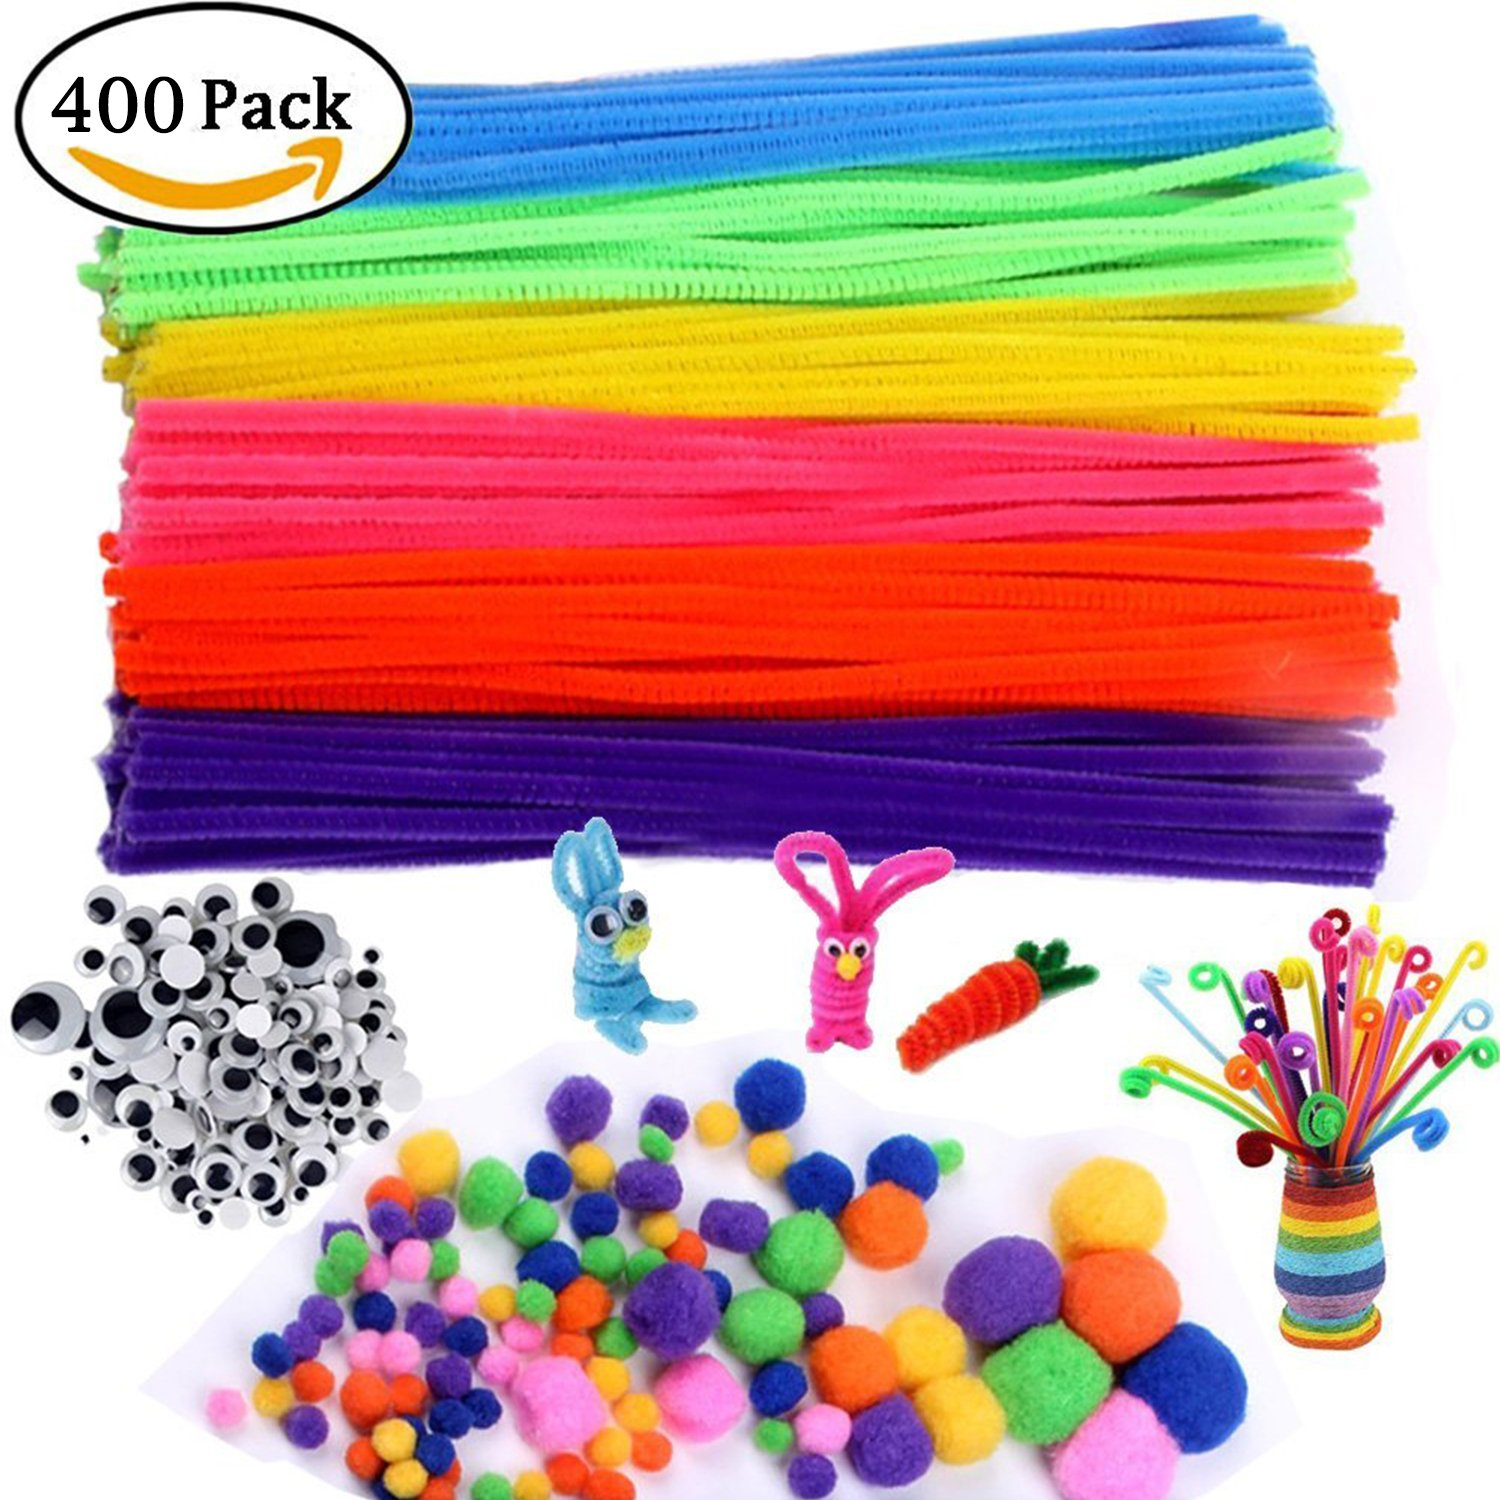 JoyGrowth Chenille Stems/Pipe Cleaners 12 inch x 6mm 190-Piece, 48 Pcs 2 Size Wiggle Googly Eyes and 162Pcs Multi Sized Pompoms for DIY Art Supplies, Total 400Pcs Assorted Colors